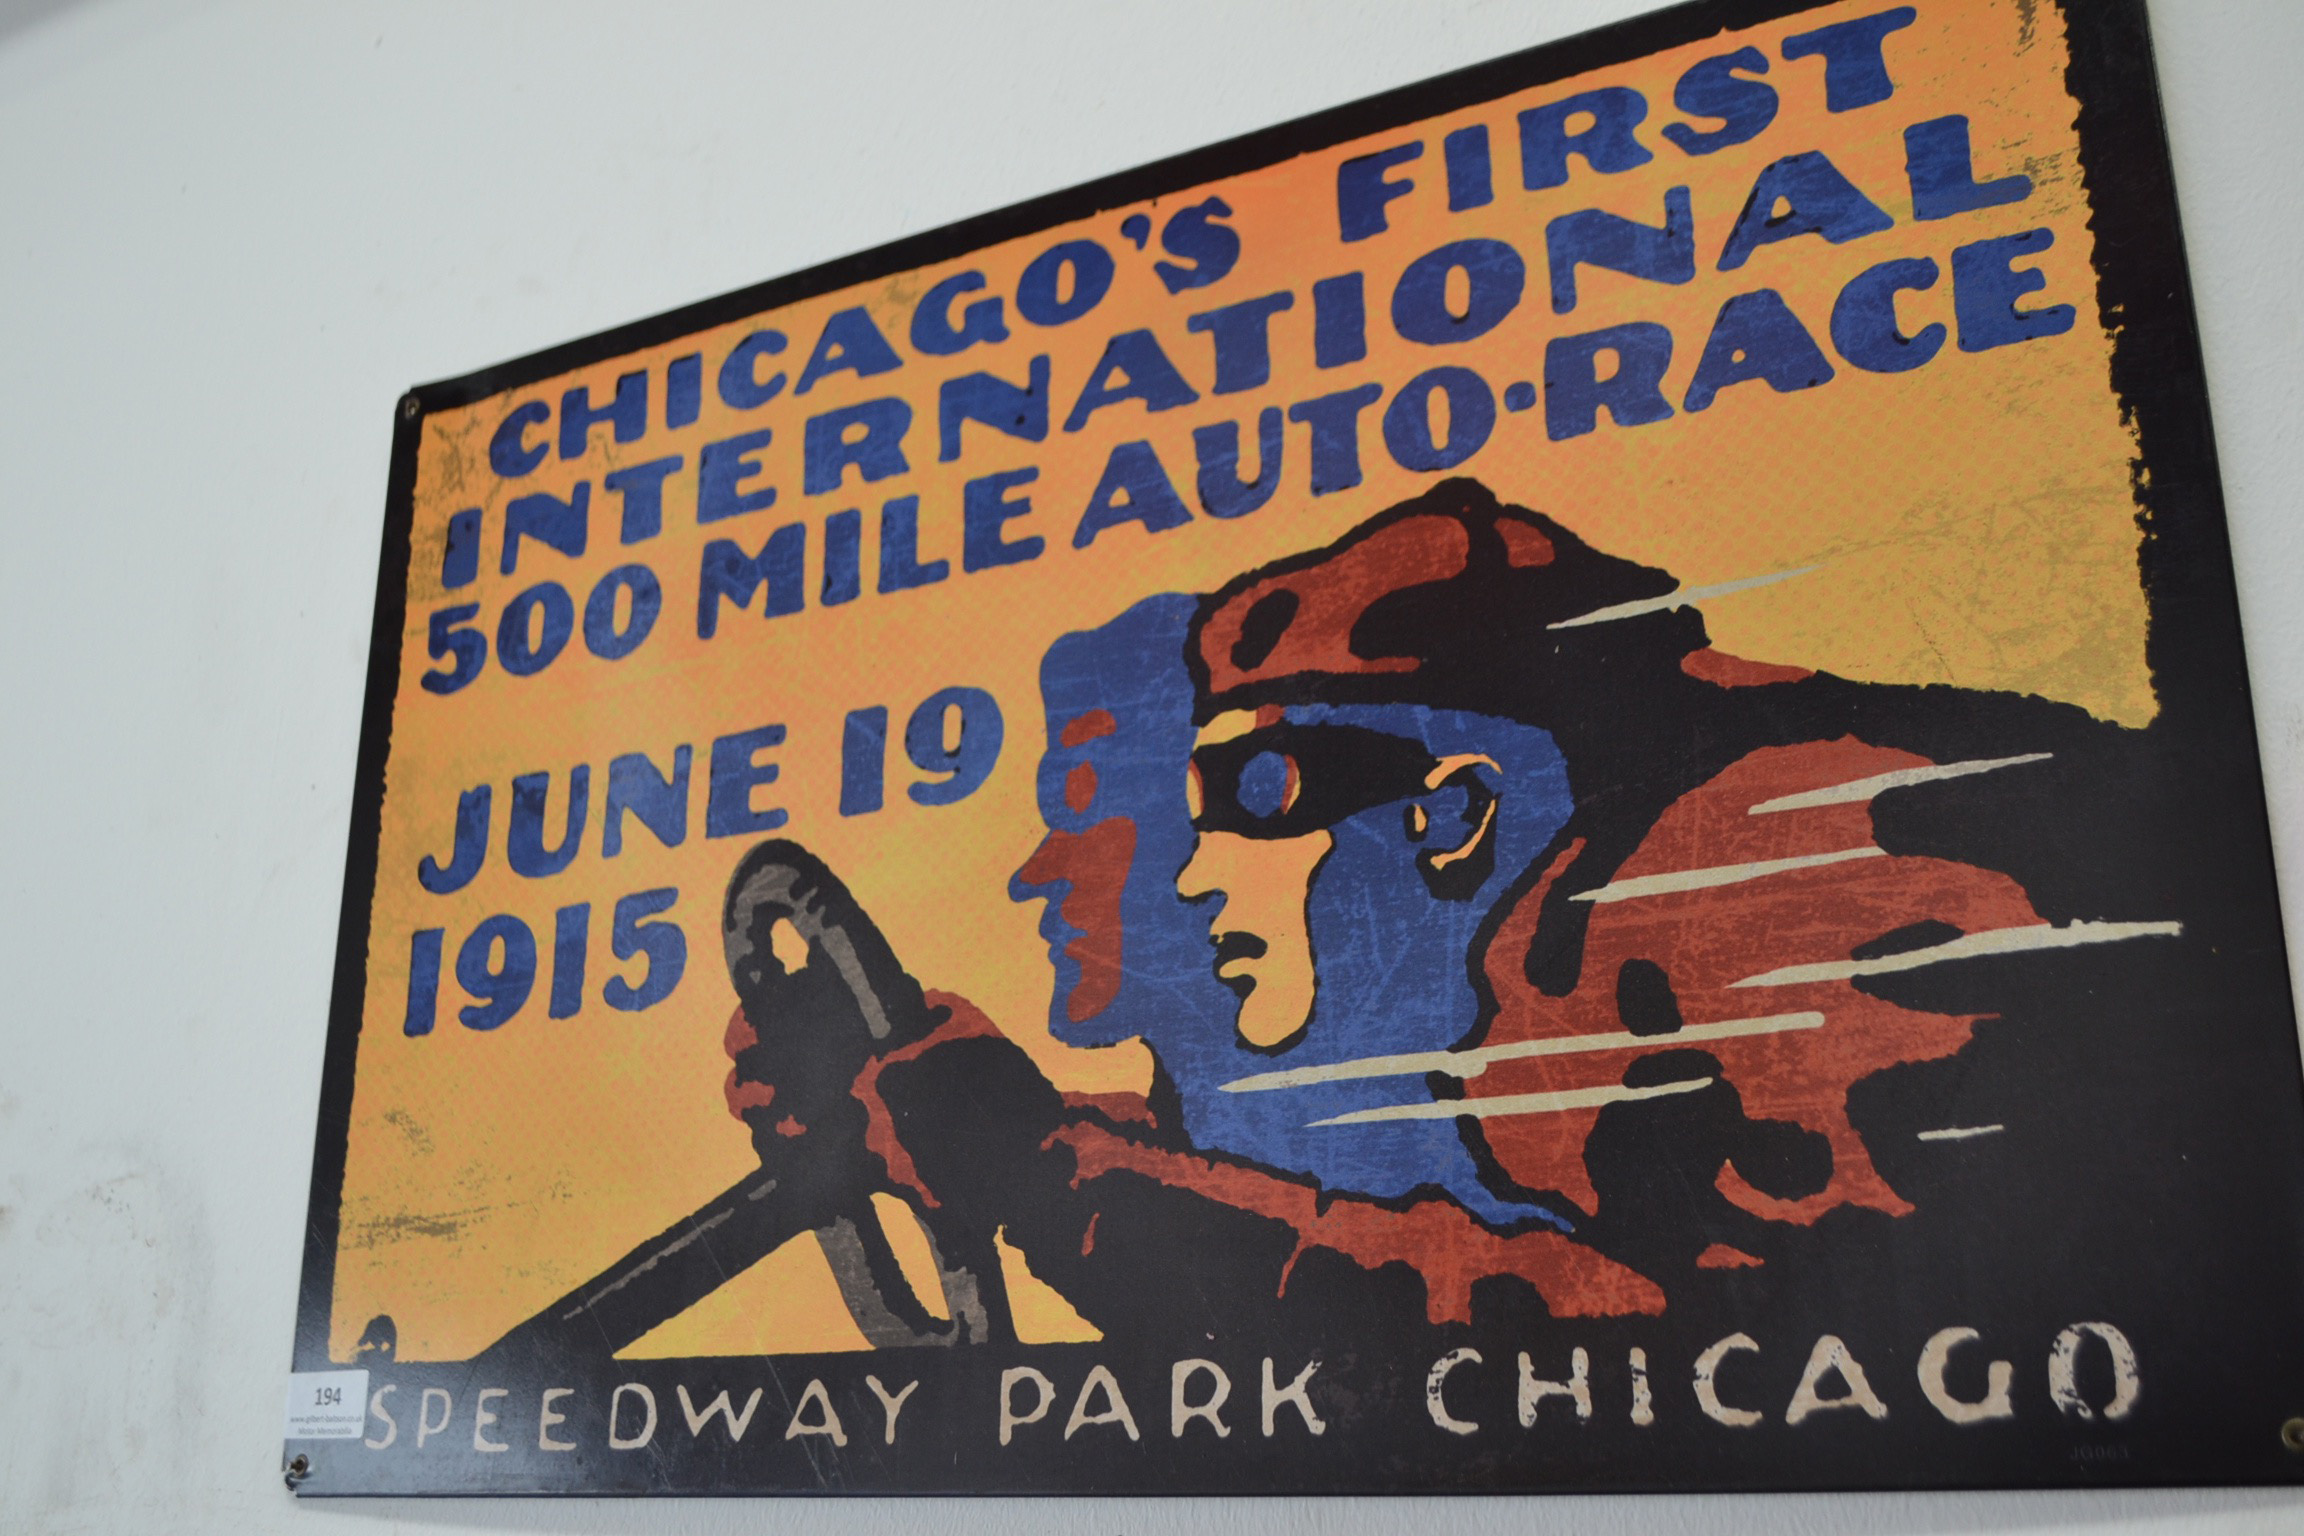 Chicagos first international 500 mile auto race june 1915 for Charity motors auction 8 mile